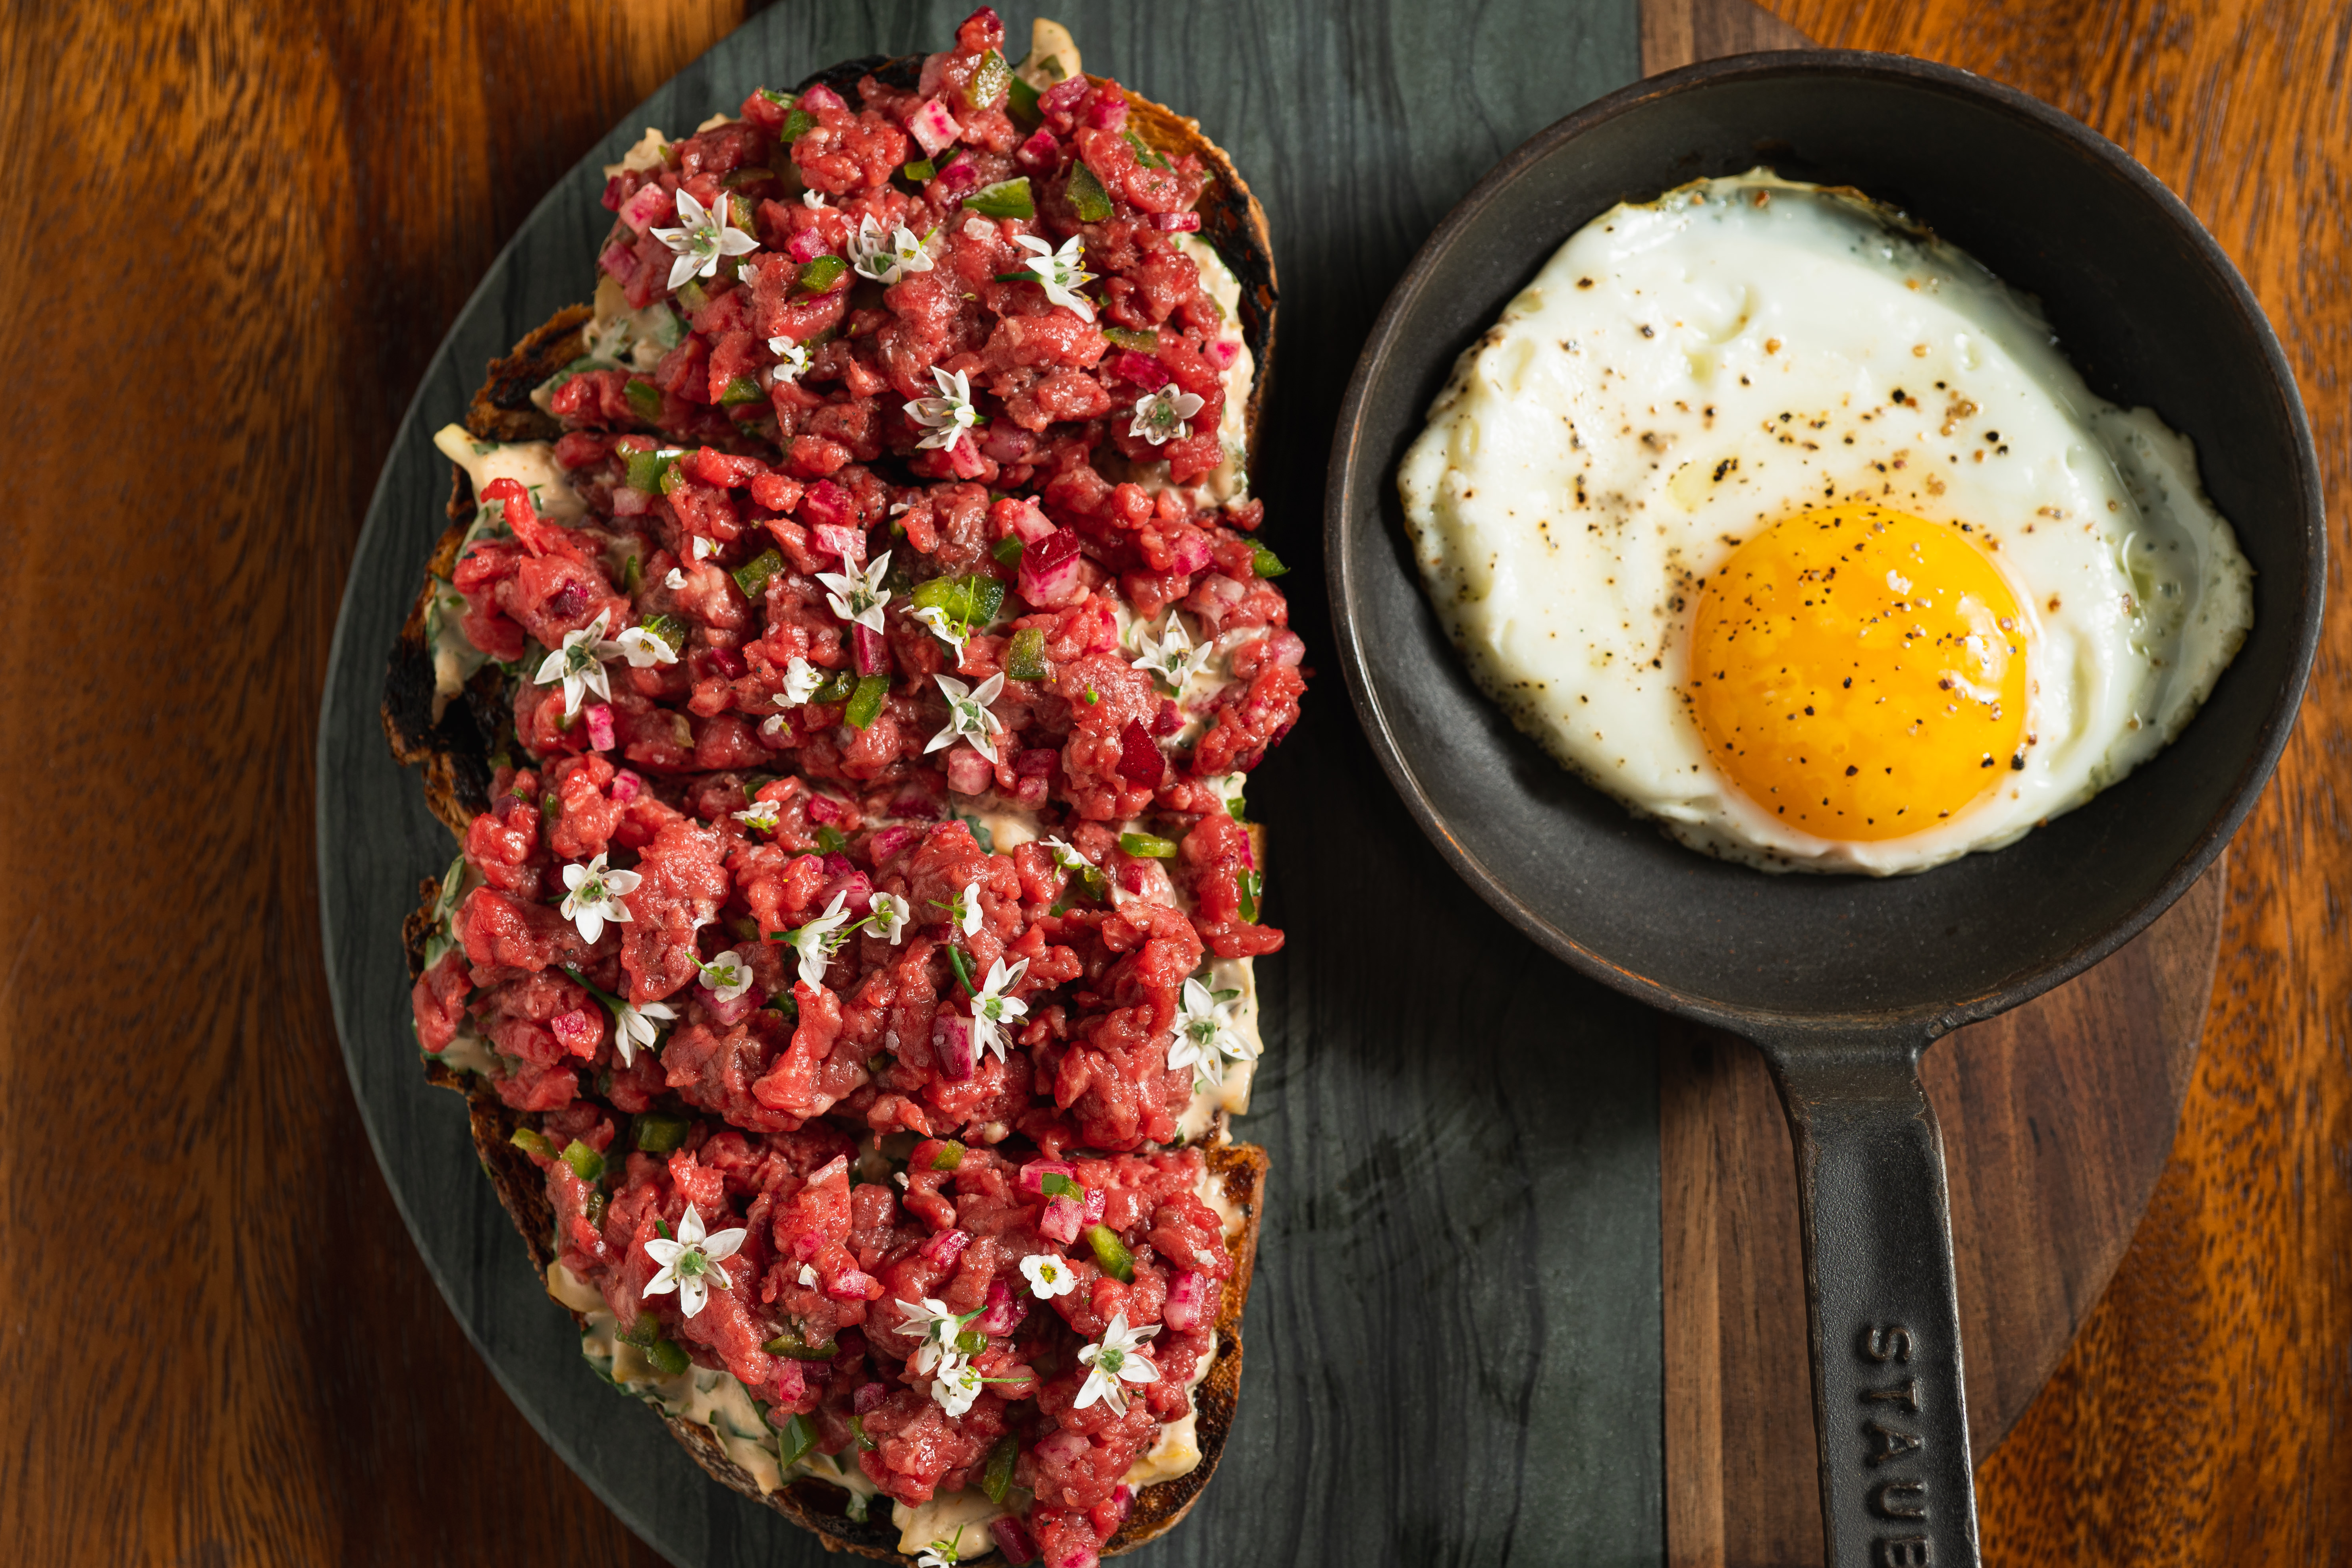 Richard Blais's beef tartare with a fried egg on the side